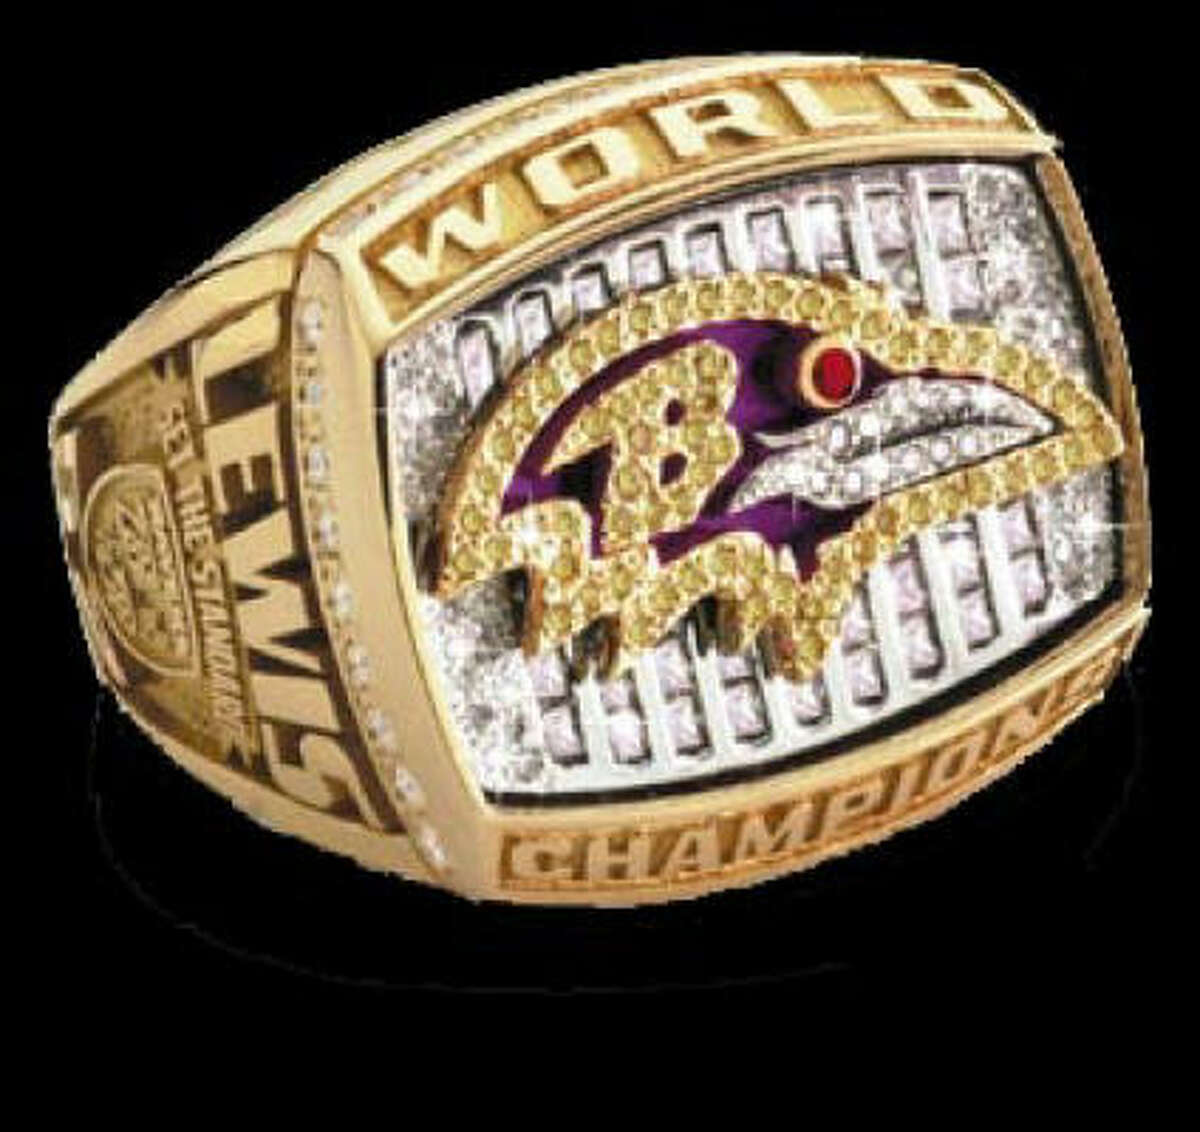 Baltimore Ravens Superbowl ring. HOUCHRON CAPTION (03/10/2003): A federal lawsuit filed by Houston jeweler Diamond Cutters alleges that Jostens Inc. and the 2001 Super Bowl champion Baltimore Ravens